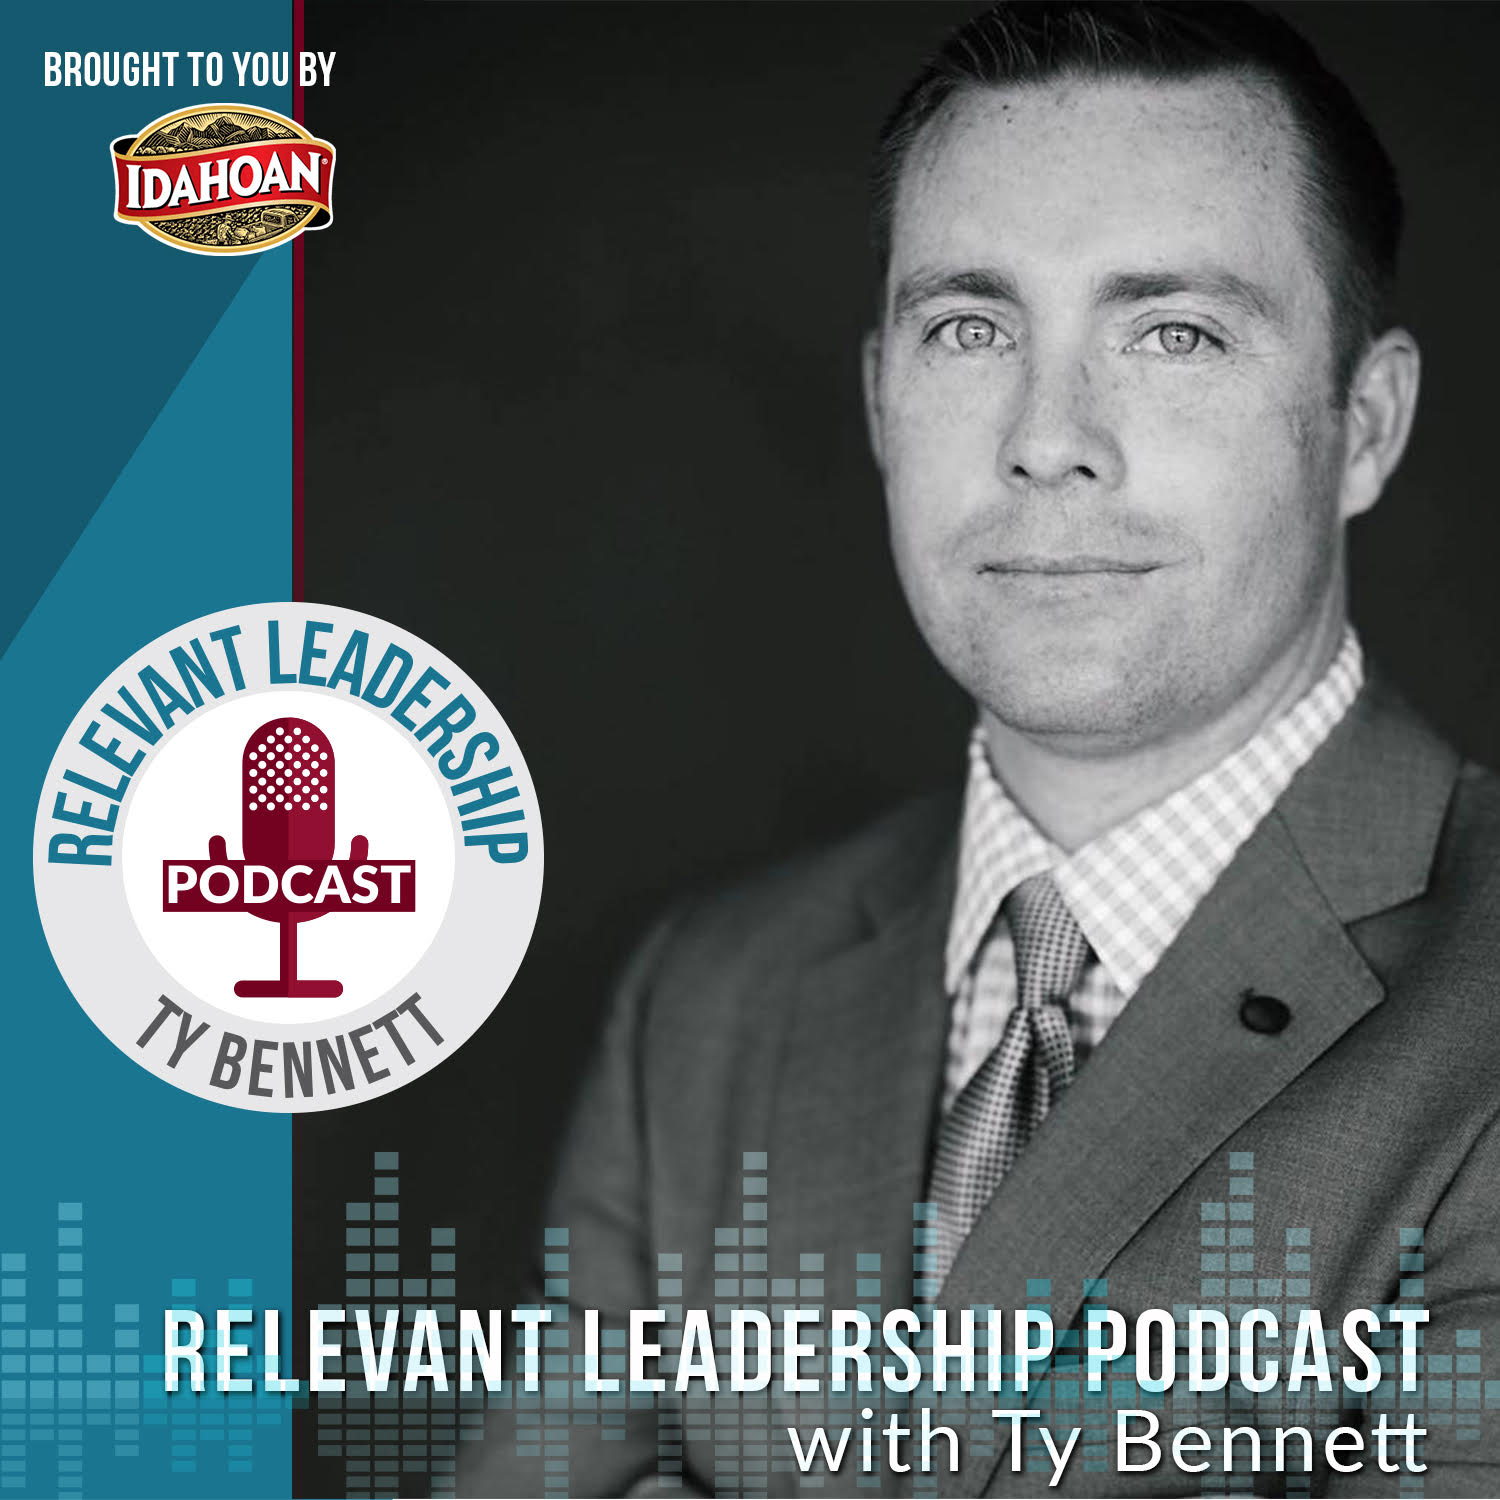 The Relevant Leadership Podcast with Ty Bennett | Inspiration | Leadership | Motivation | Inspiring Stories | CEO Interviews | Bestselling Authors show art